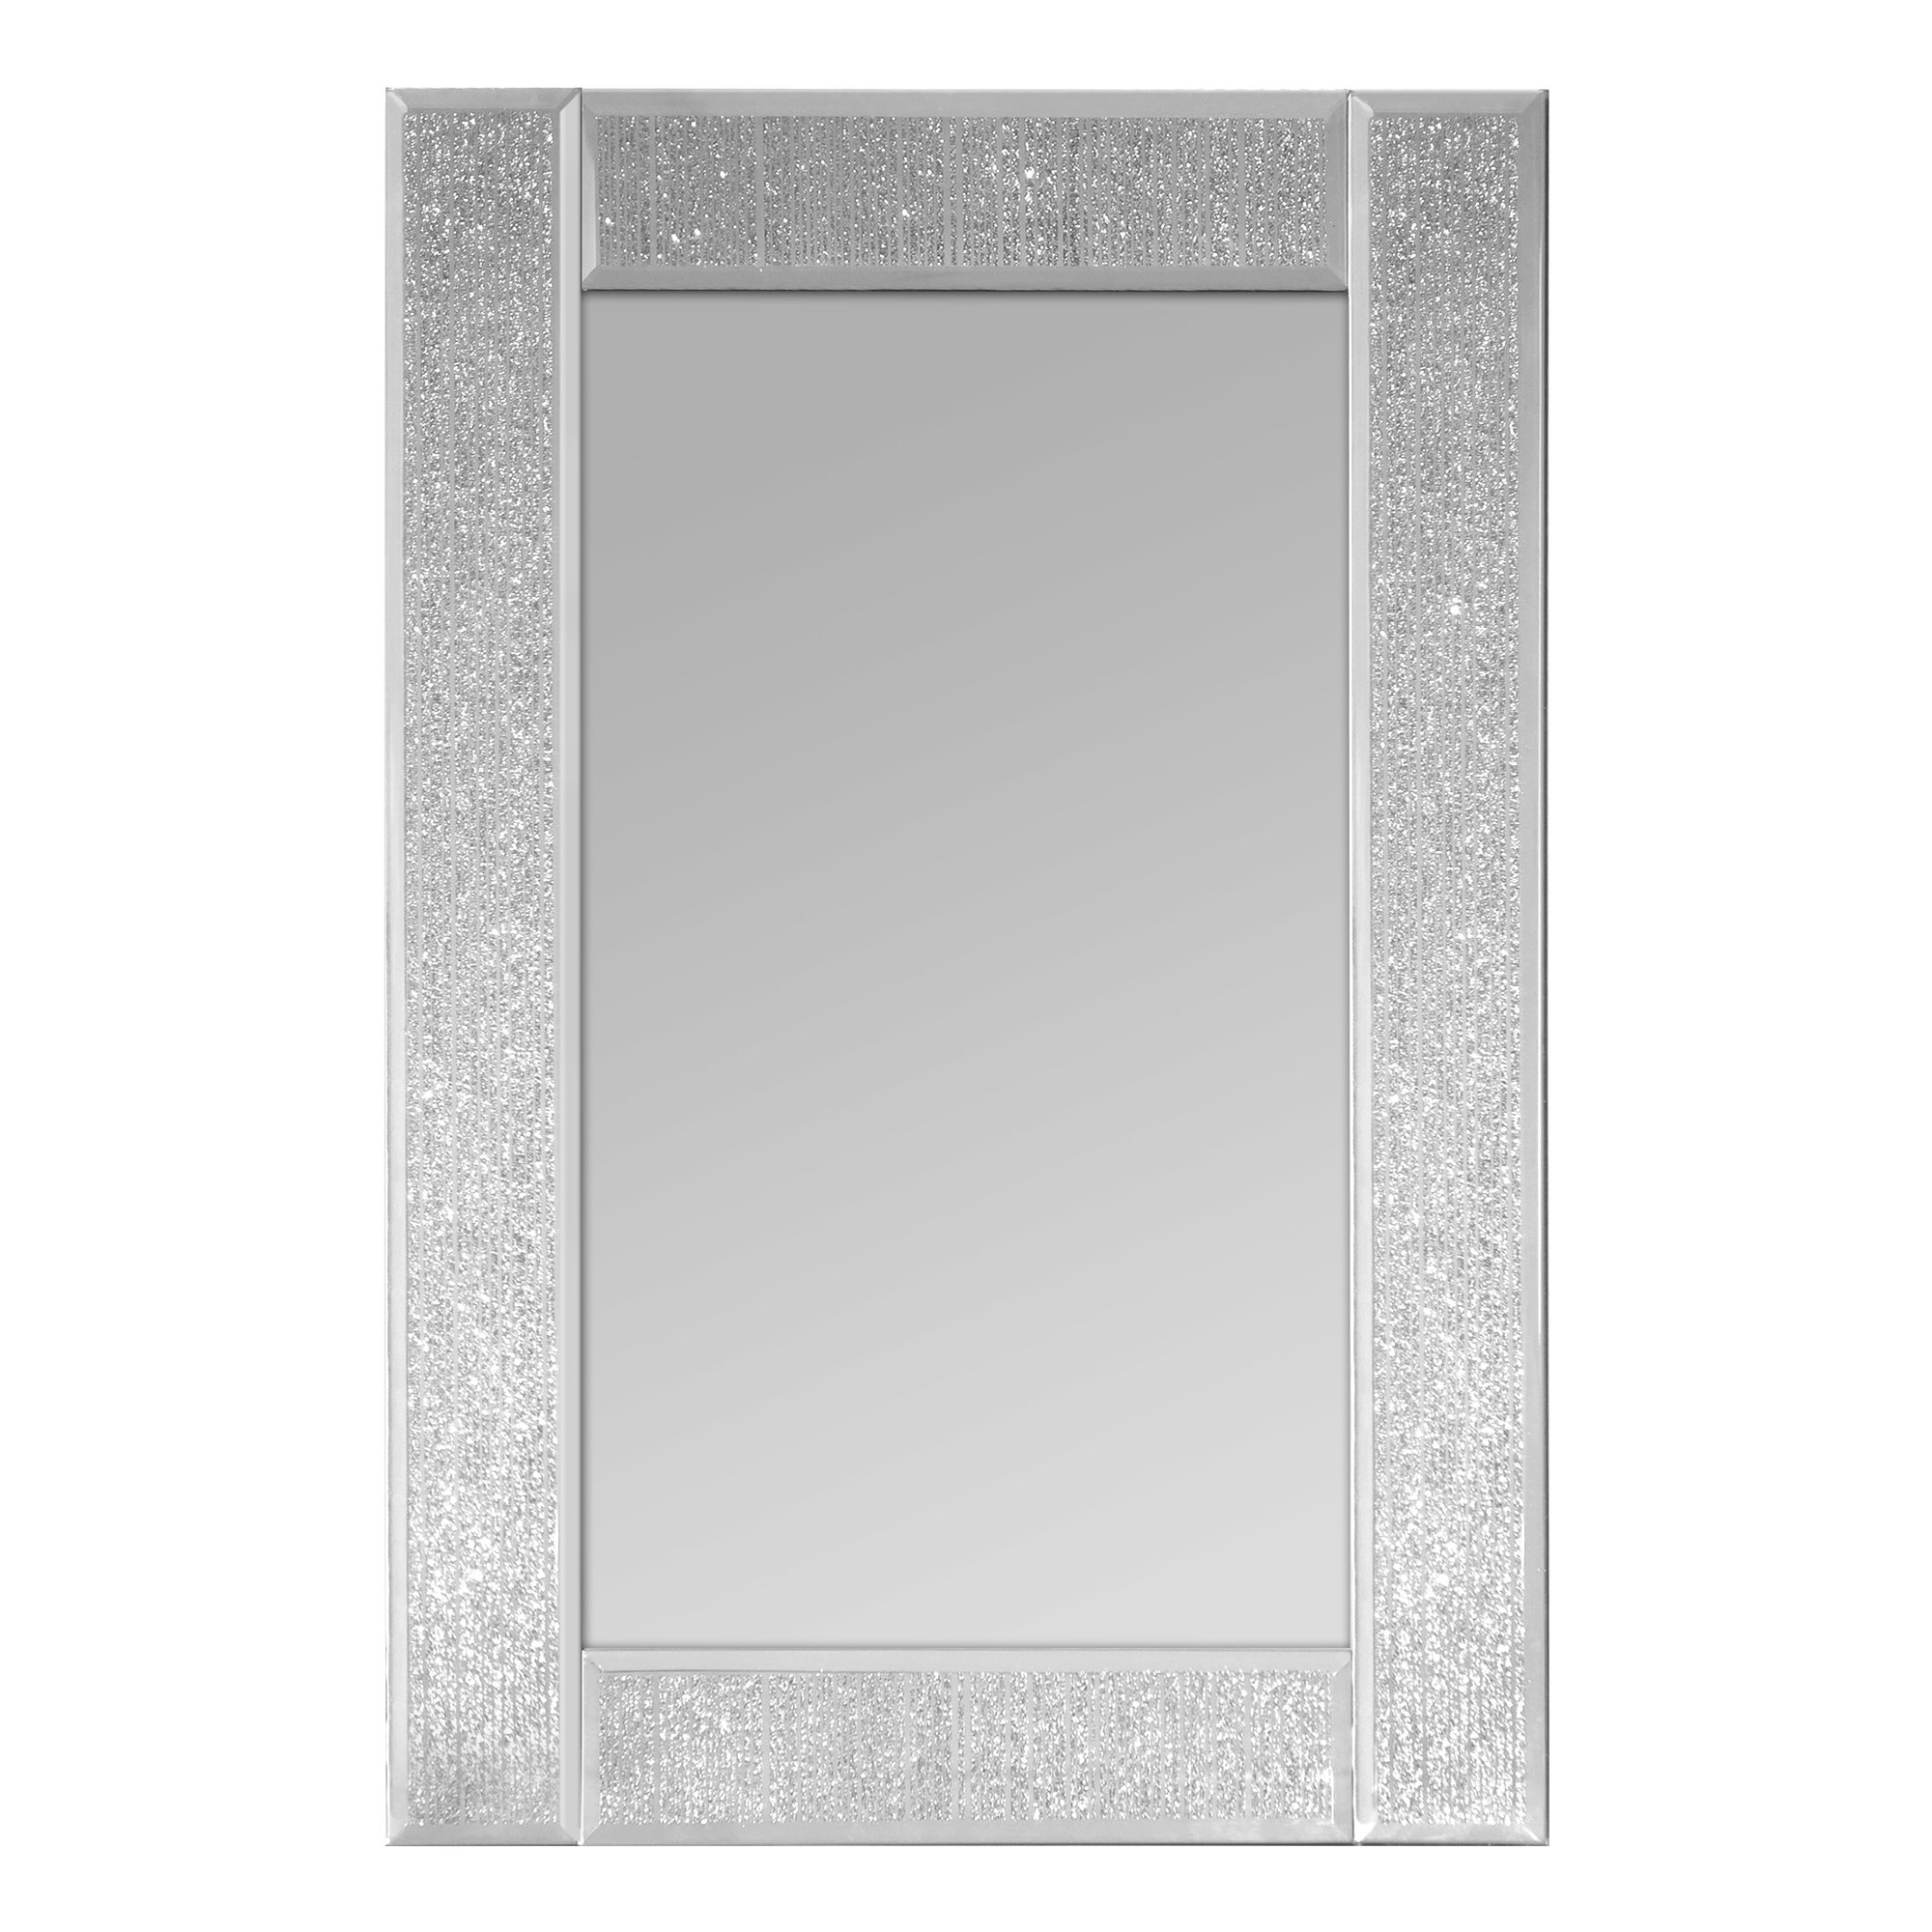 Selections Chaumont Glitter Ascot Rectangle Wall Mirror Throughout Silver Glitter Mirror (Image 11 of 15)